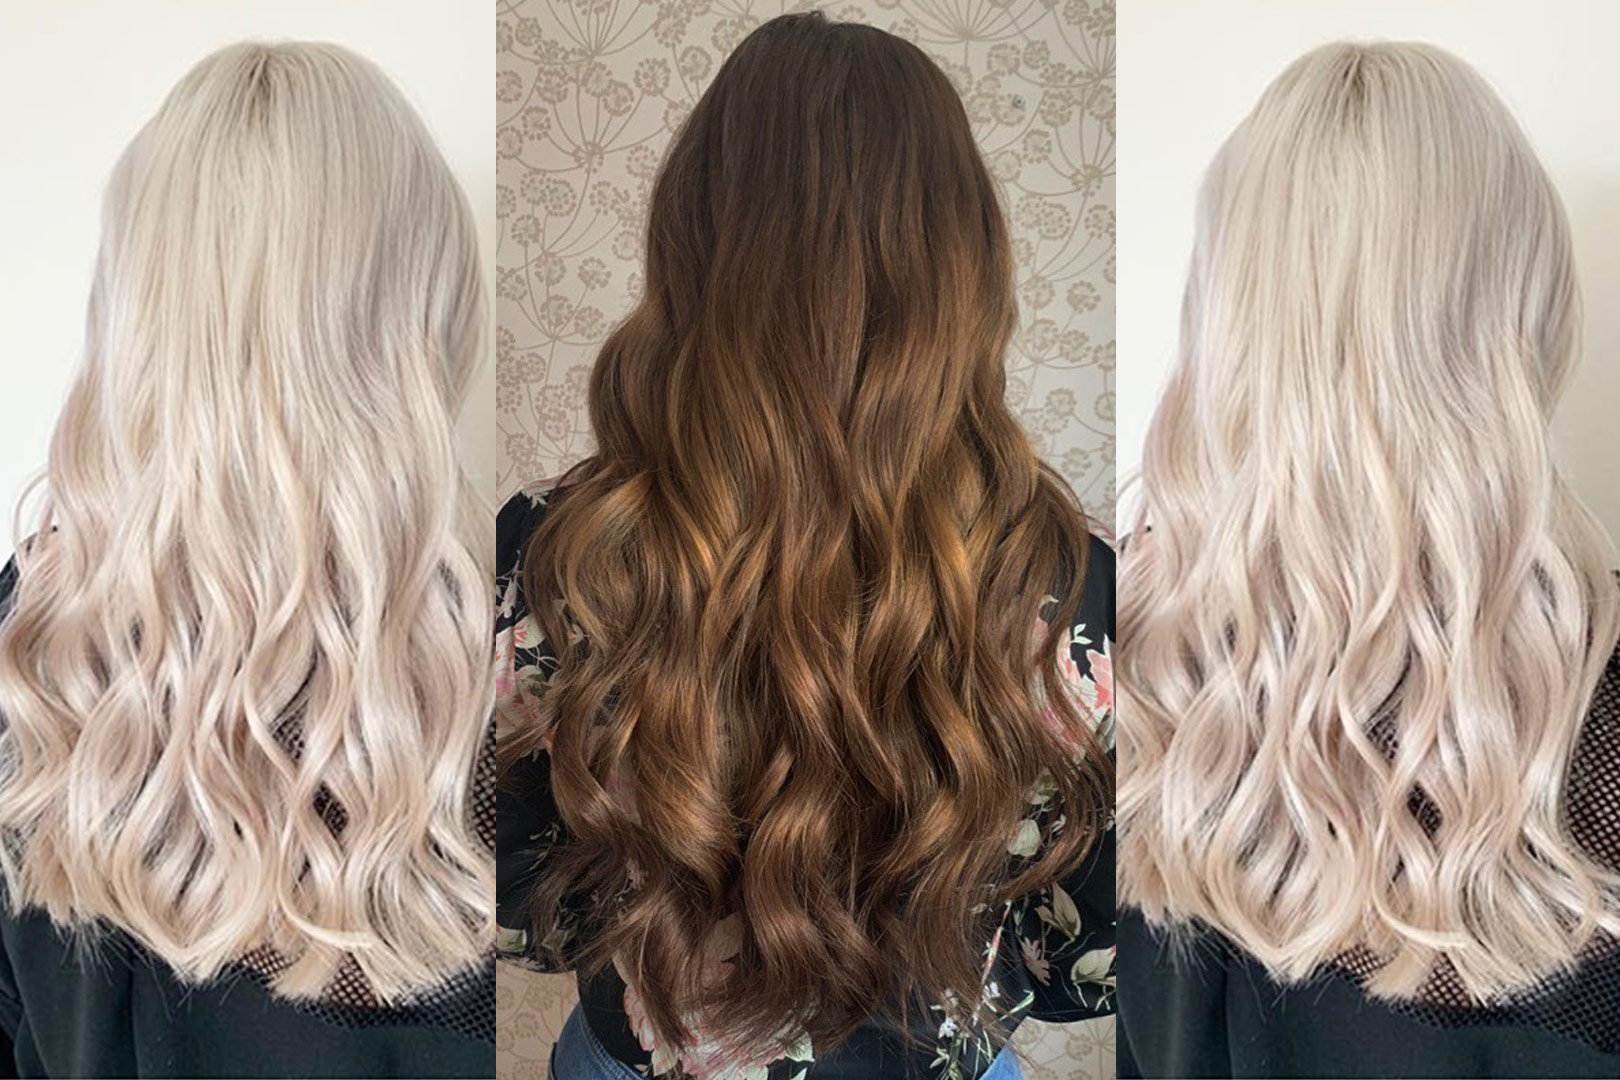 Tiny Tips Hair Extensions